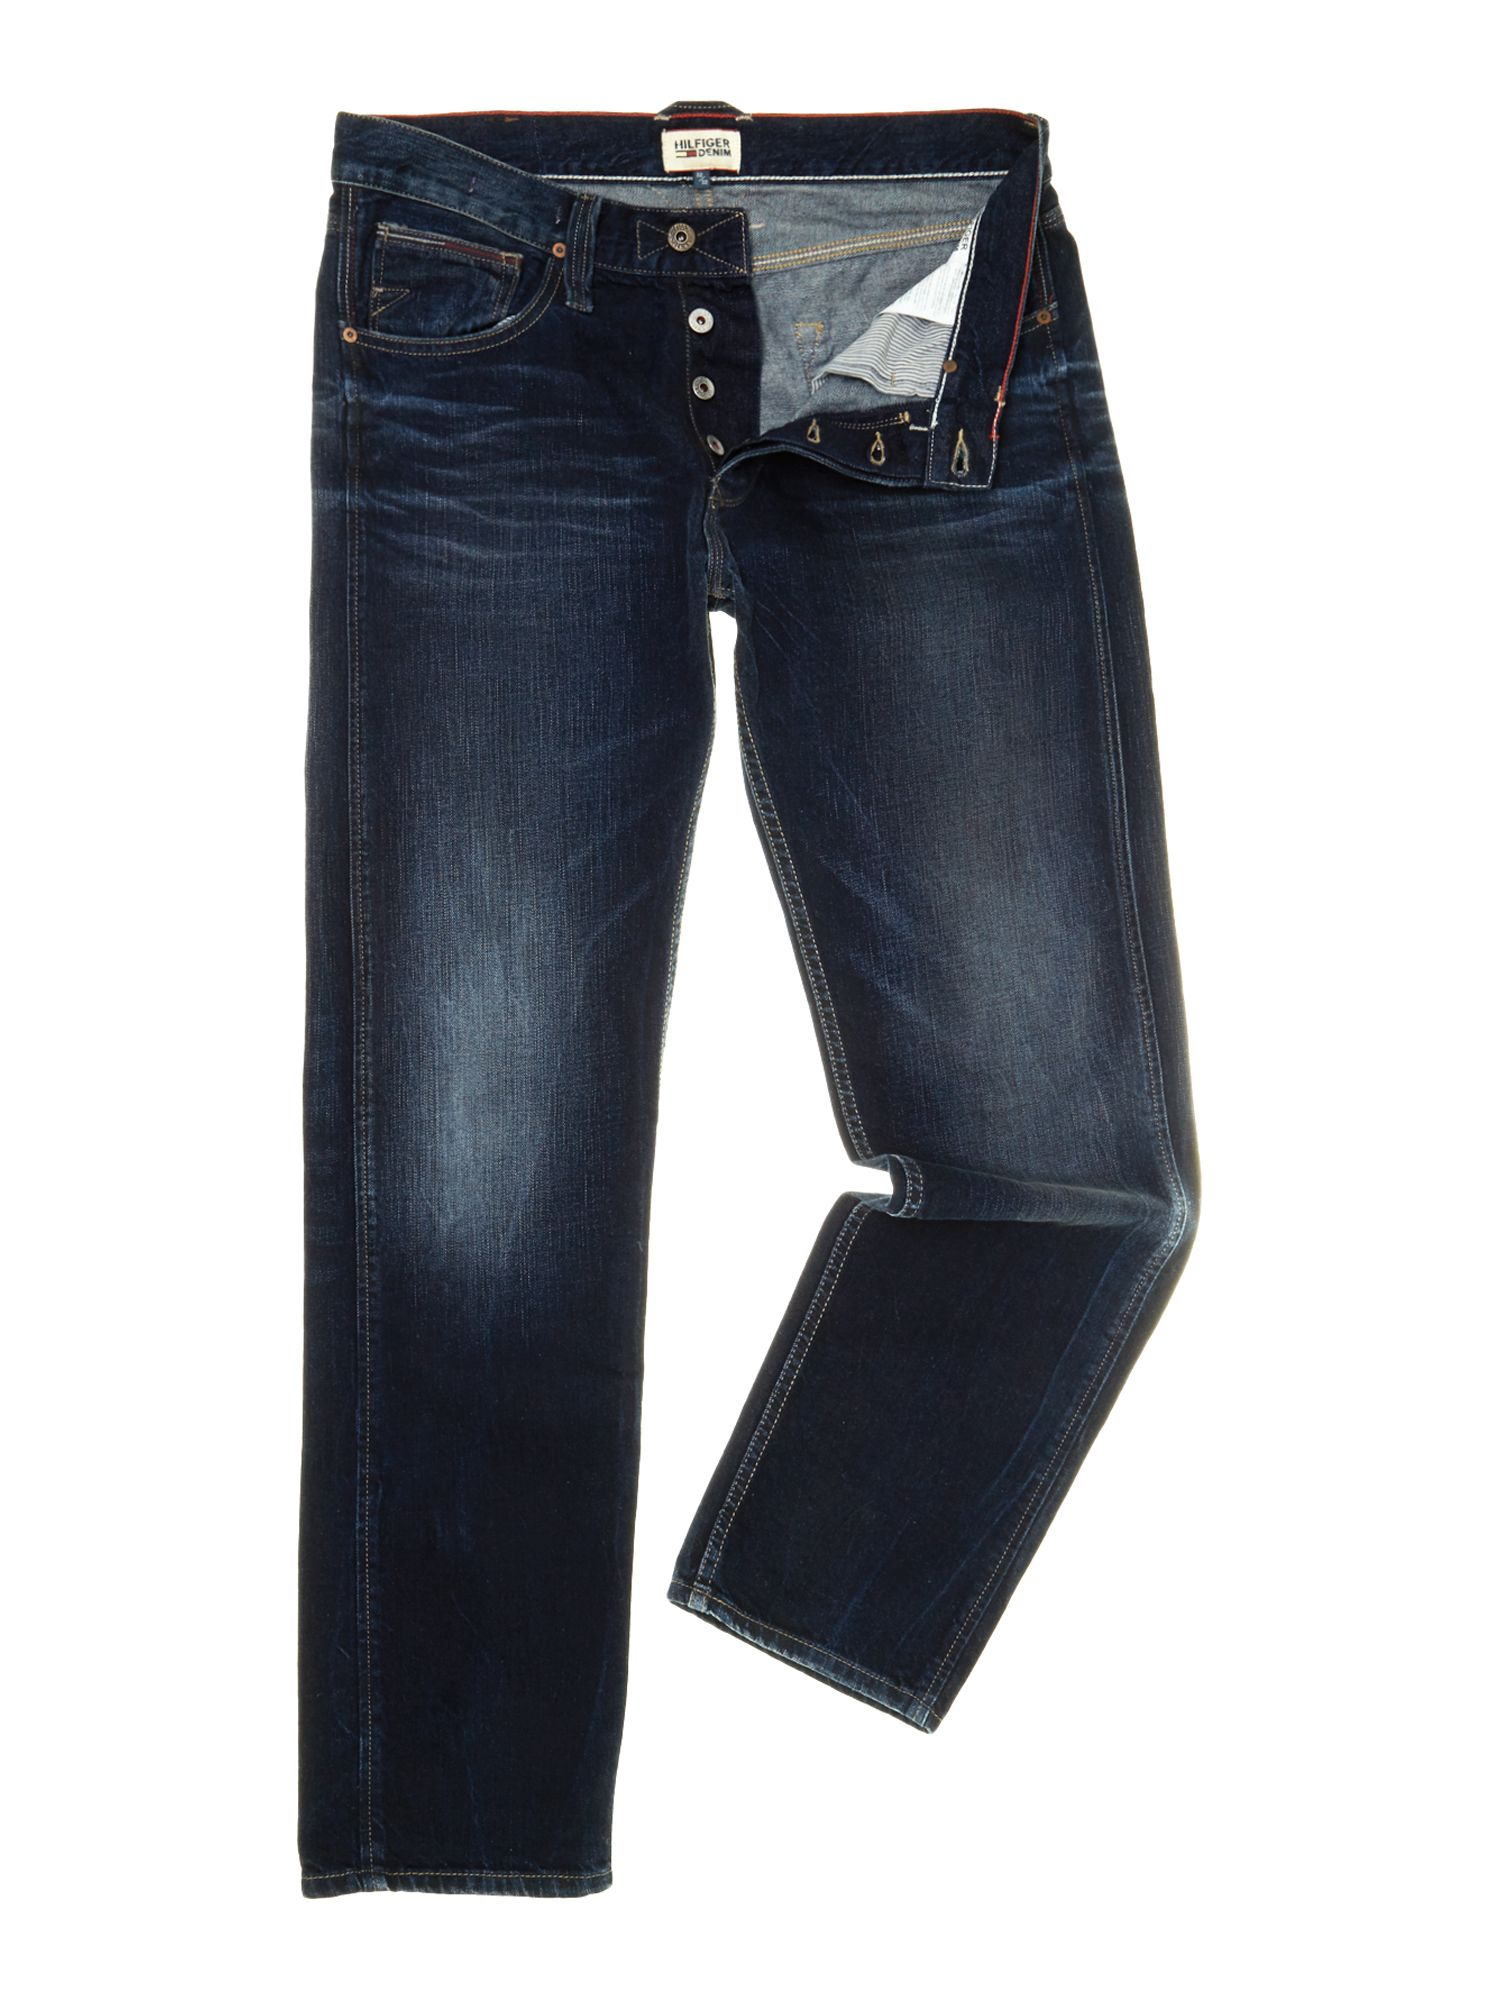 tommy hilfiger straight fit bootcut jeans in blue for men lyst. Black Bedroom Furniture Sets. Home Design Ideas